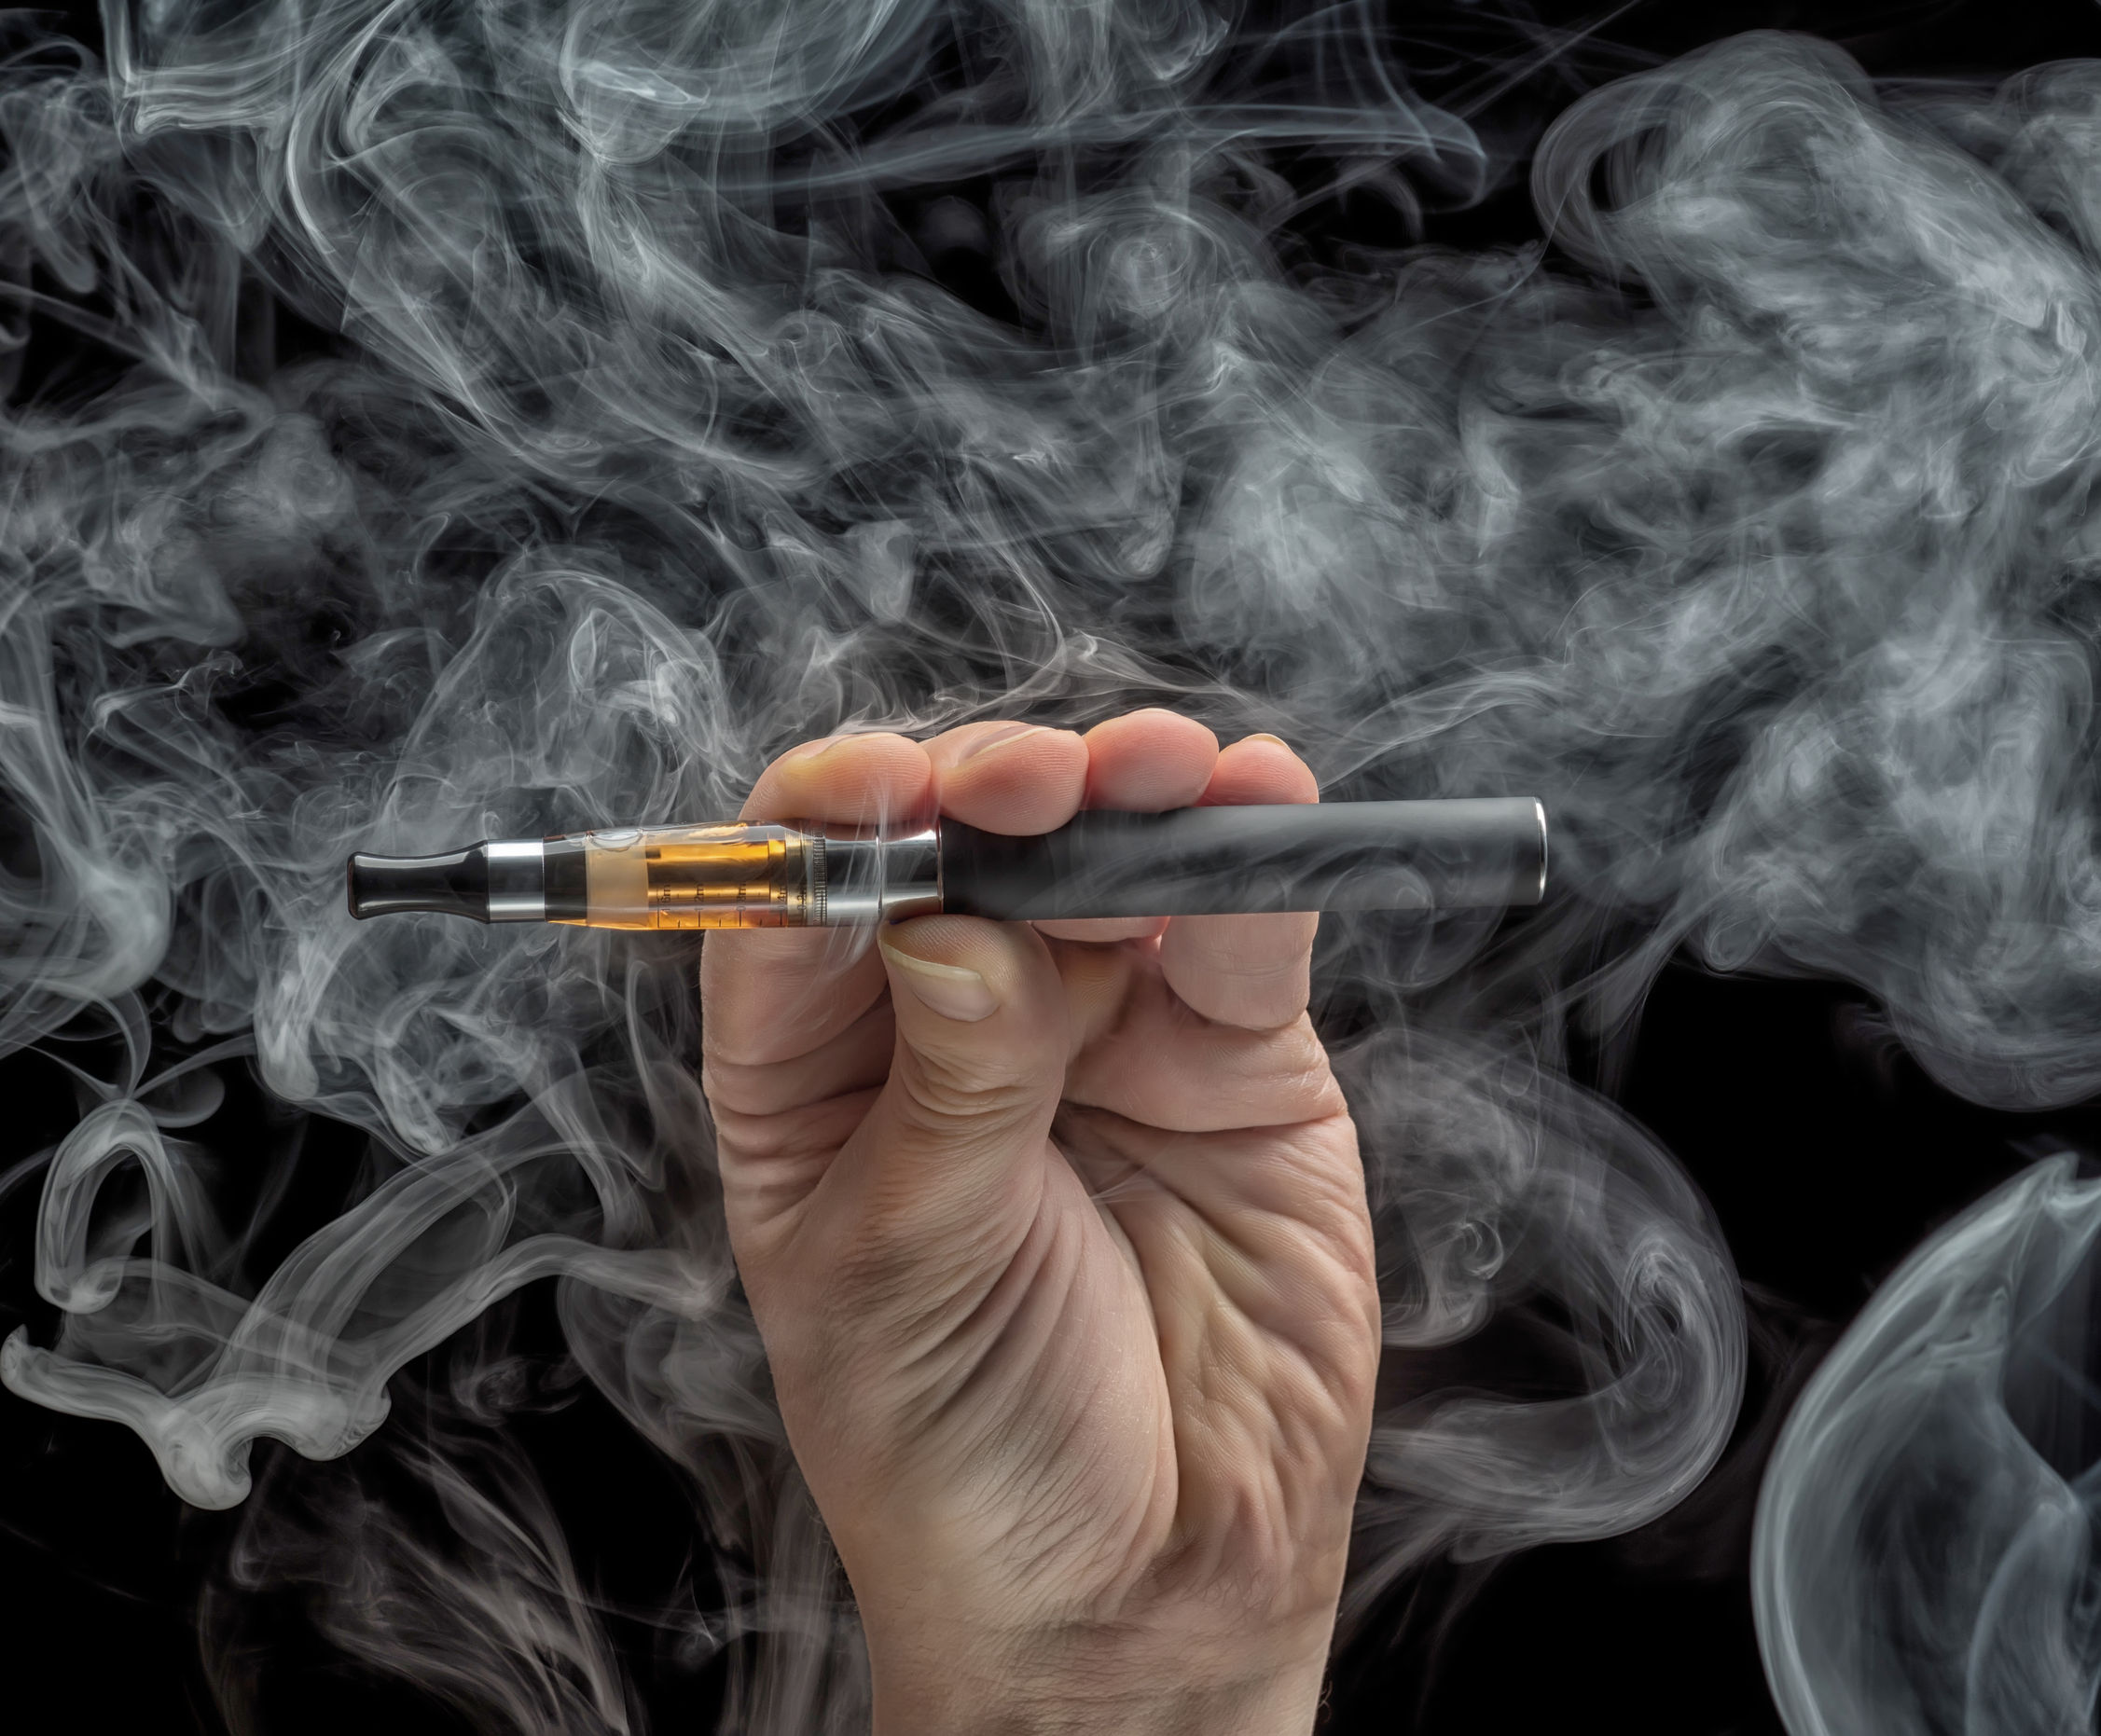 Should E cigarettes be legal?